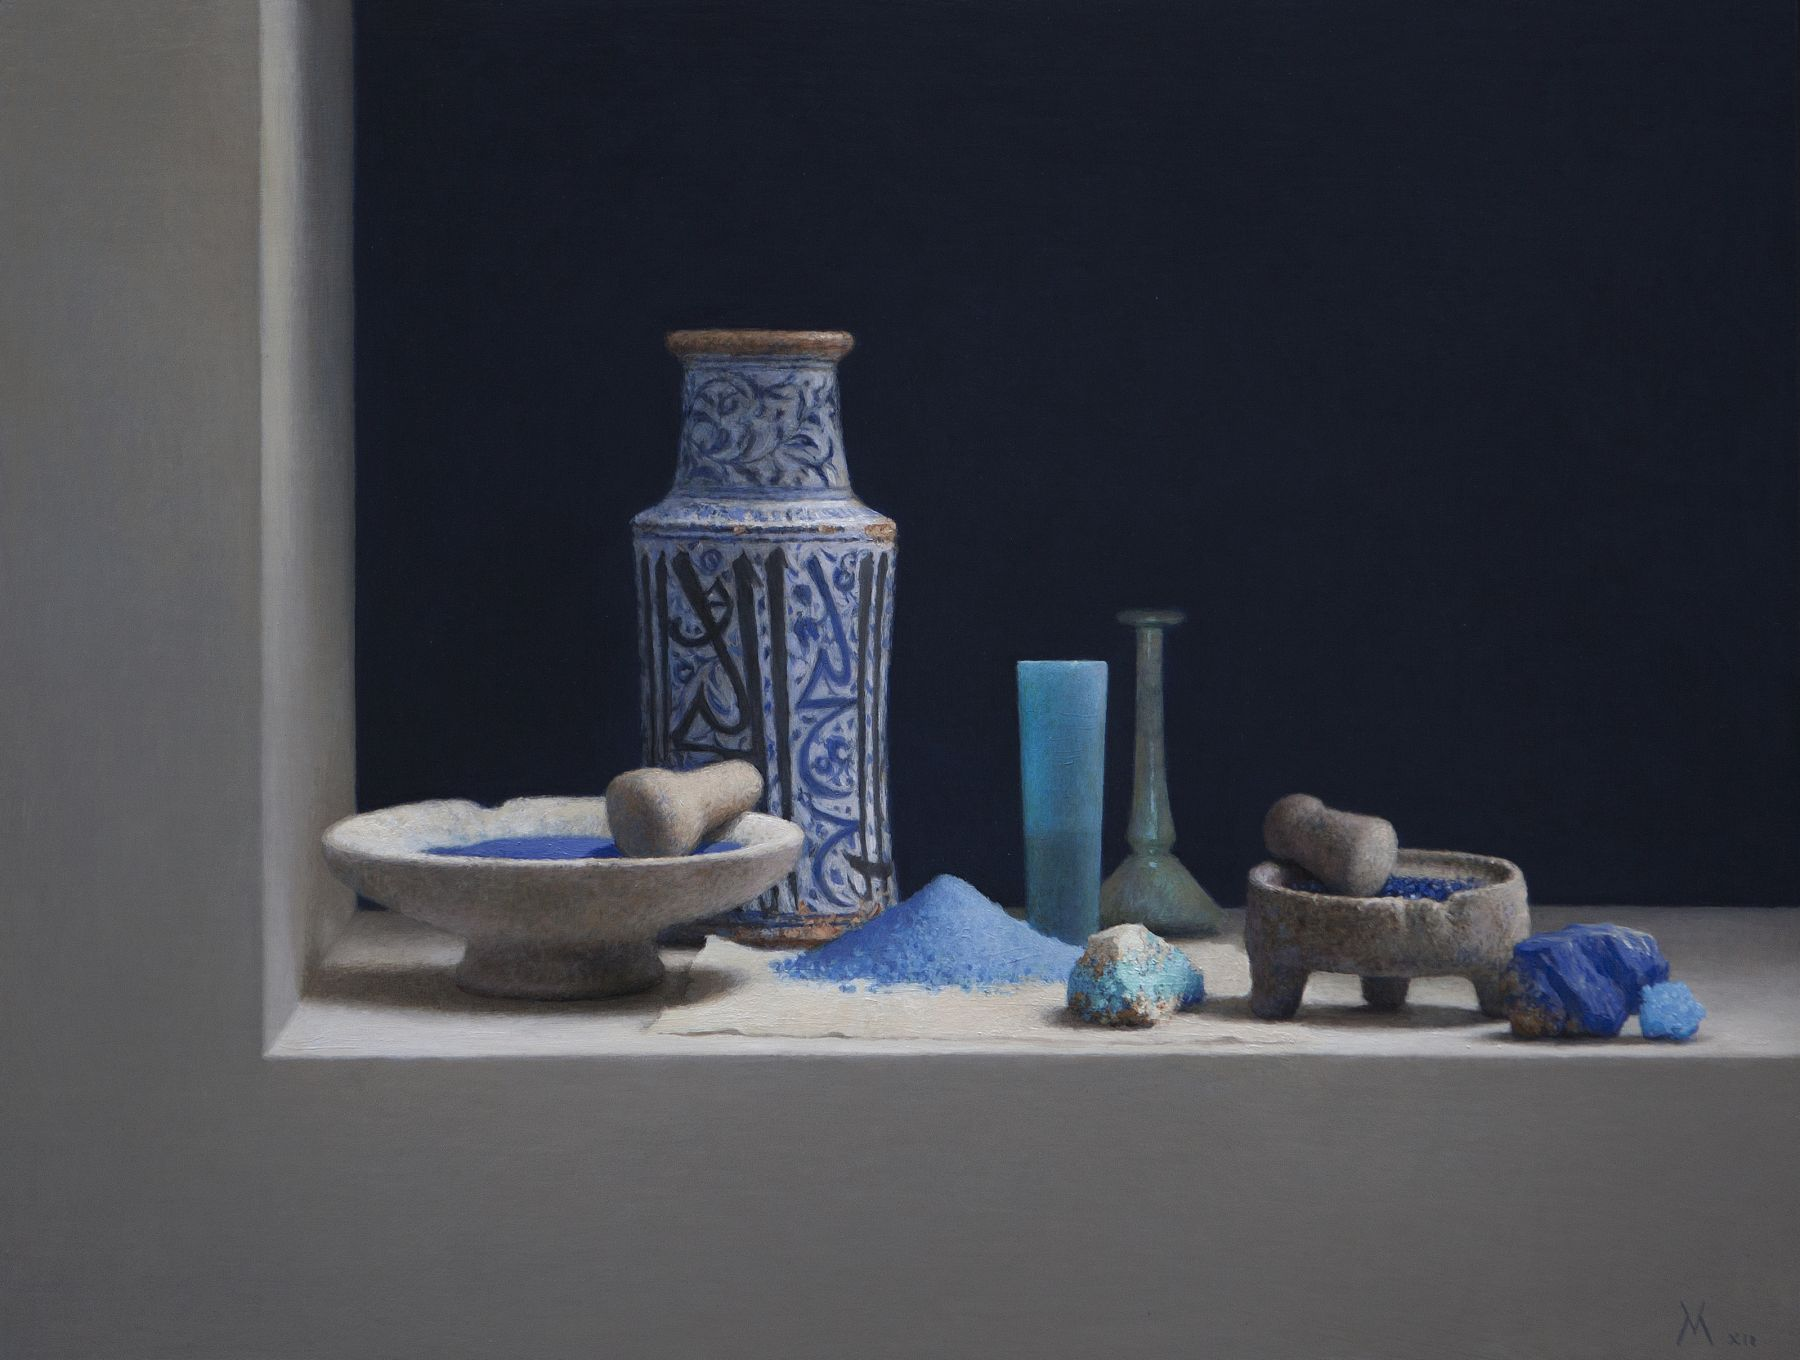 Guillermo Muñoz Vera, Blue Pigments (SOLD), 2012, oil on canvas mounted on panel, 24 x 31 1/2 inches